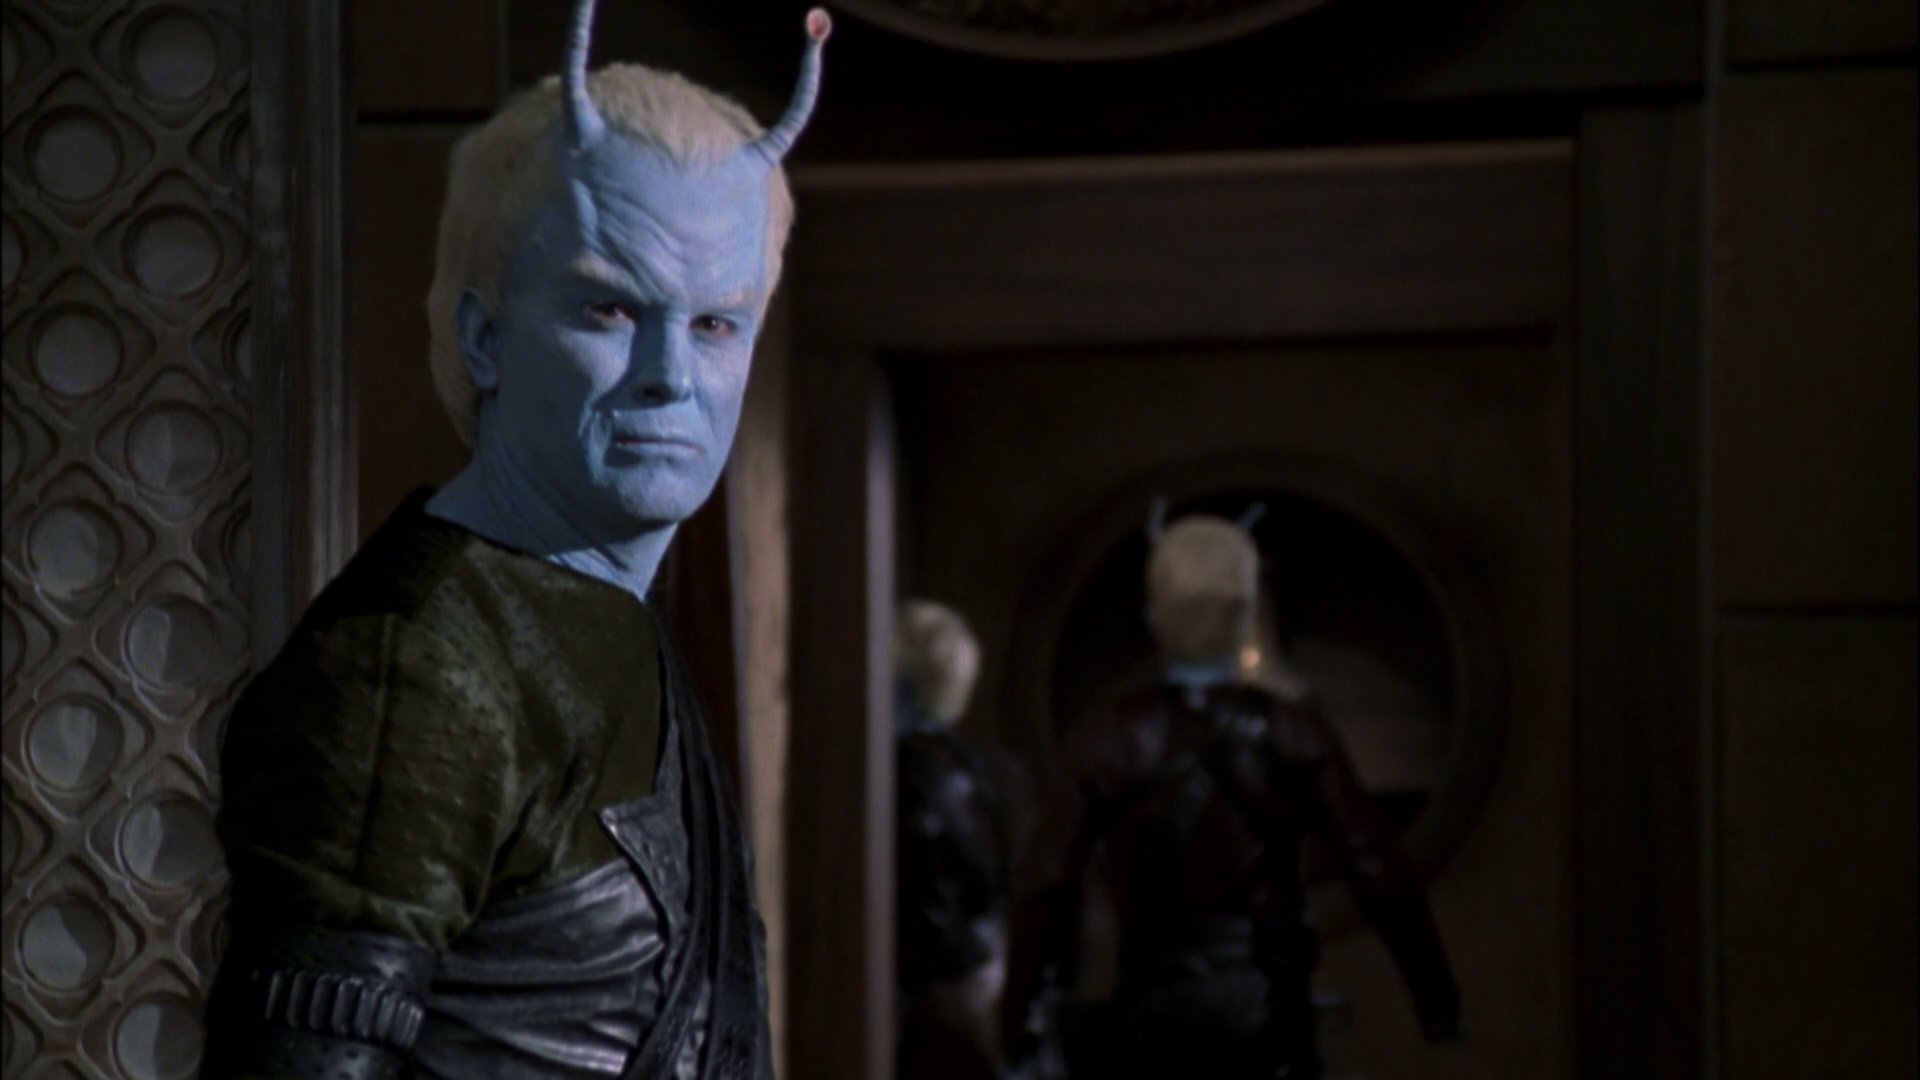 Screencap: Enterprise Season 1 Vergleichsbilder